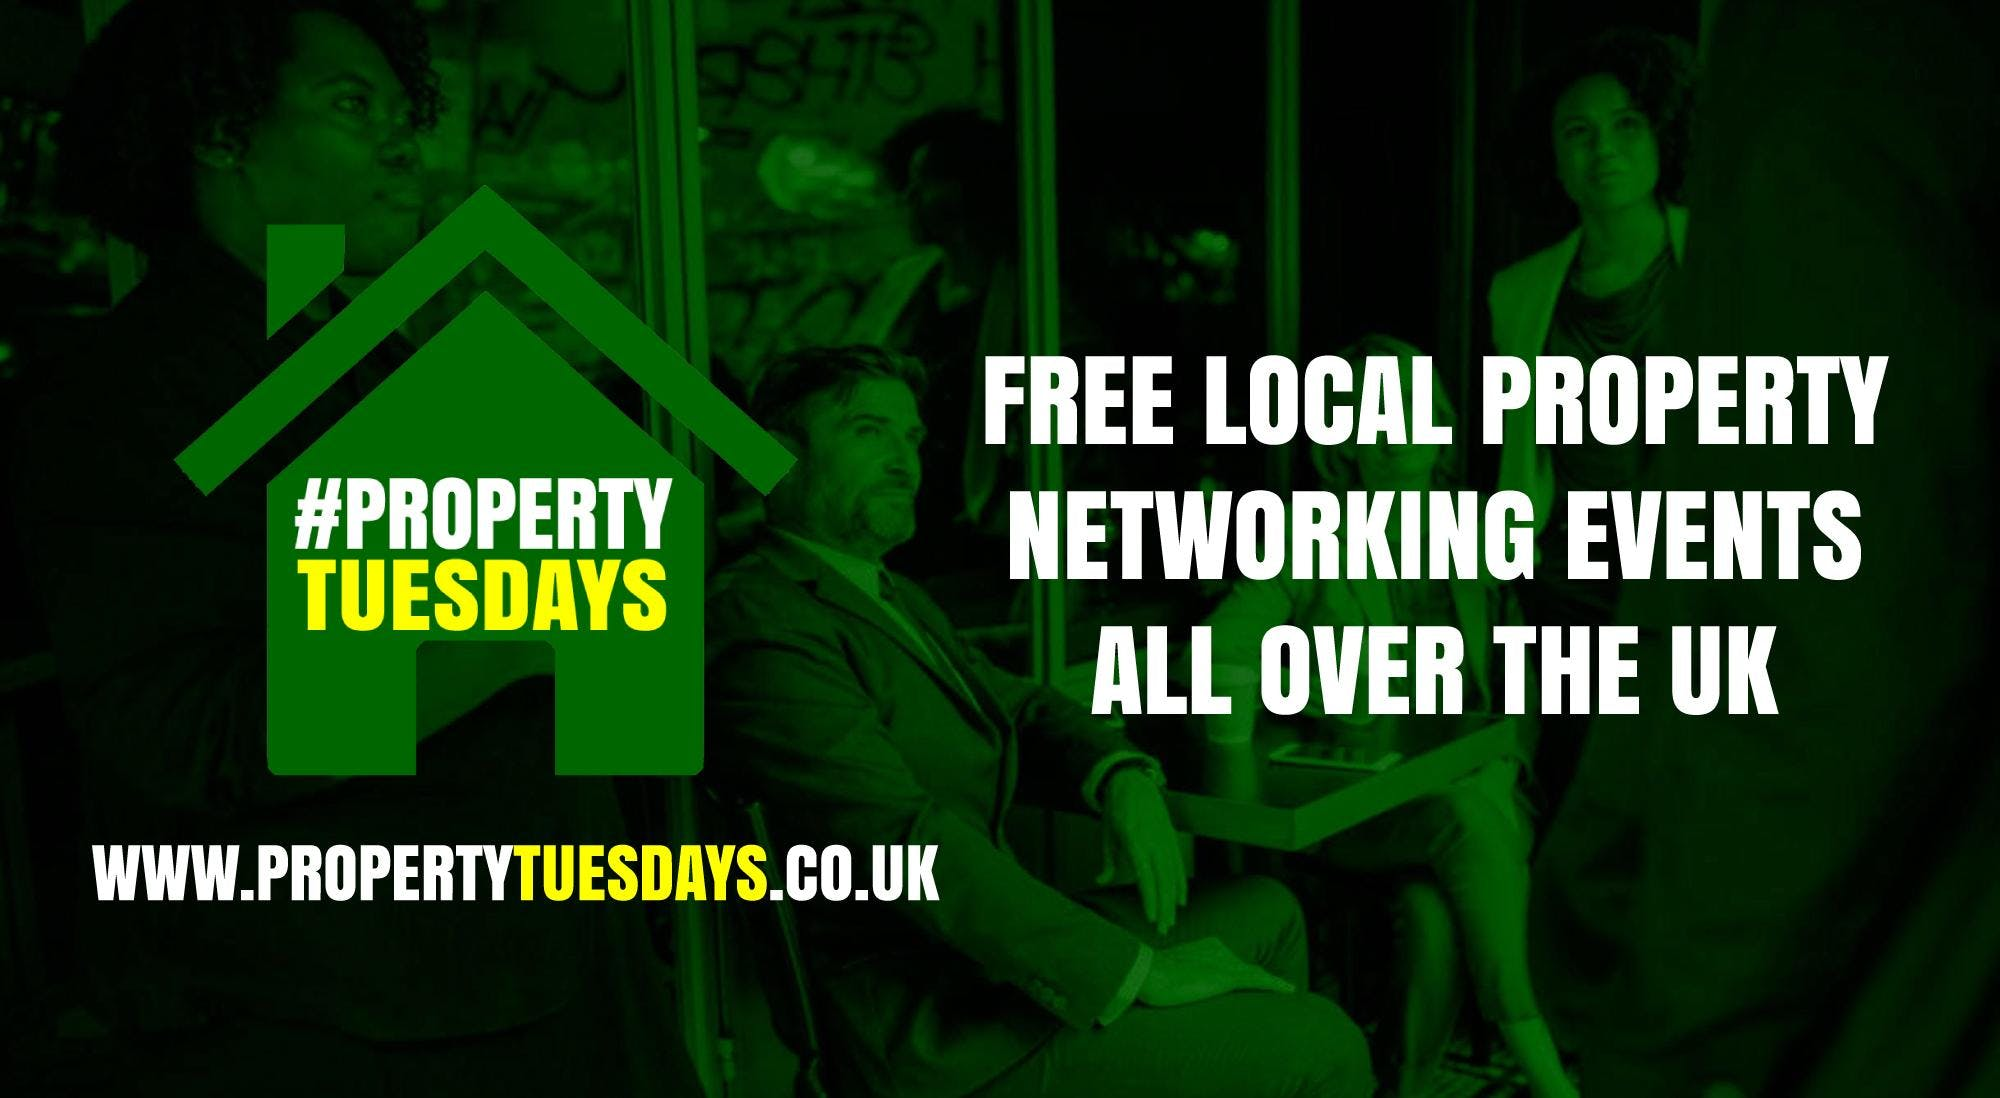 Property Tuesdays! Free property networking event in Warwick